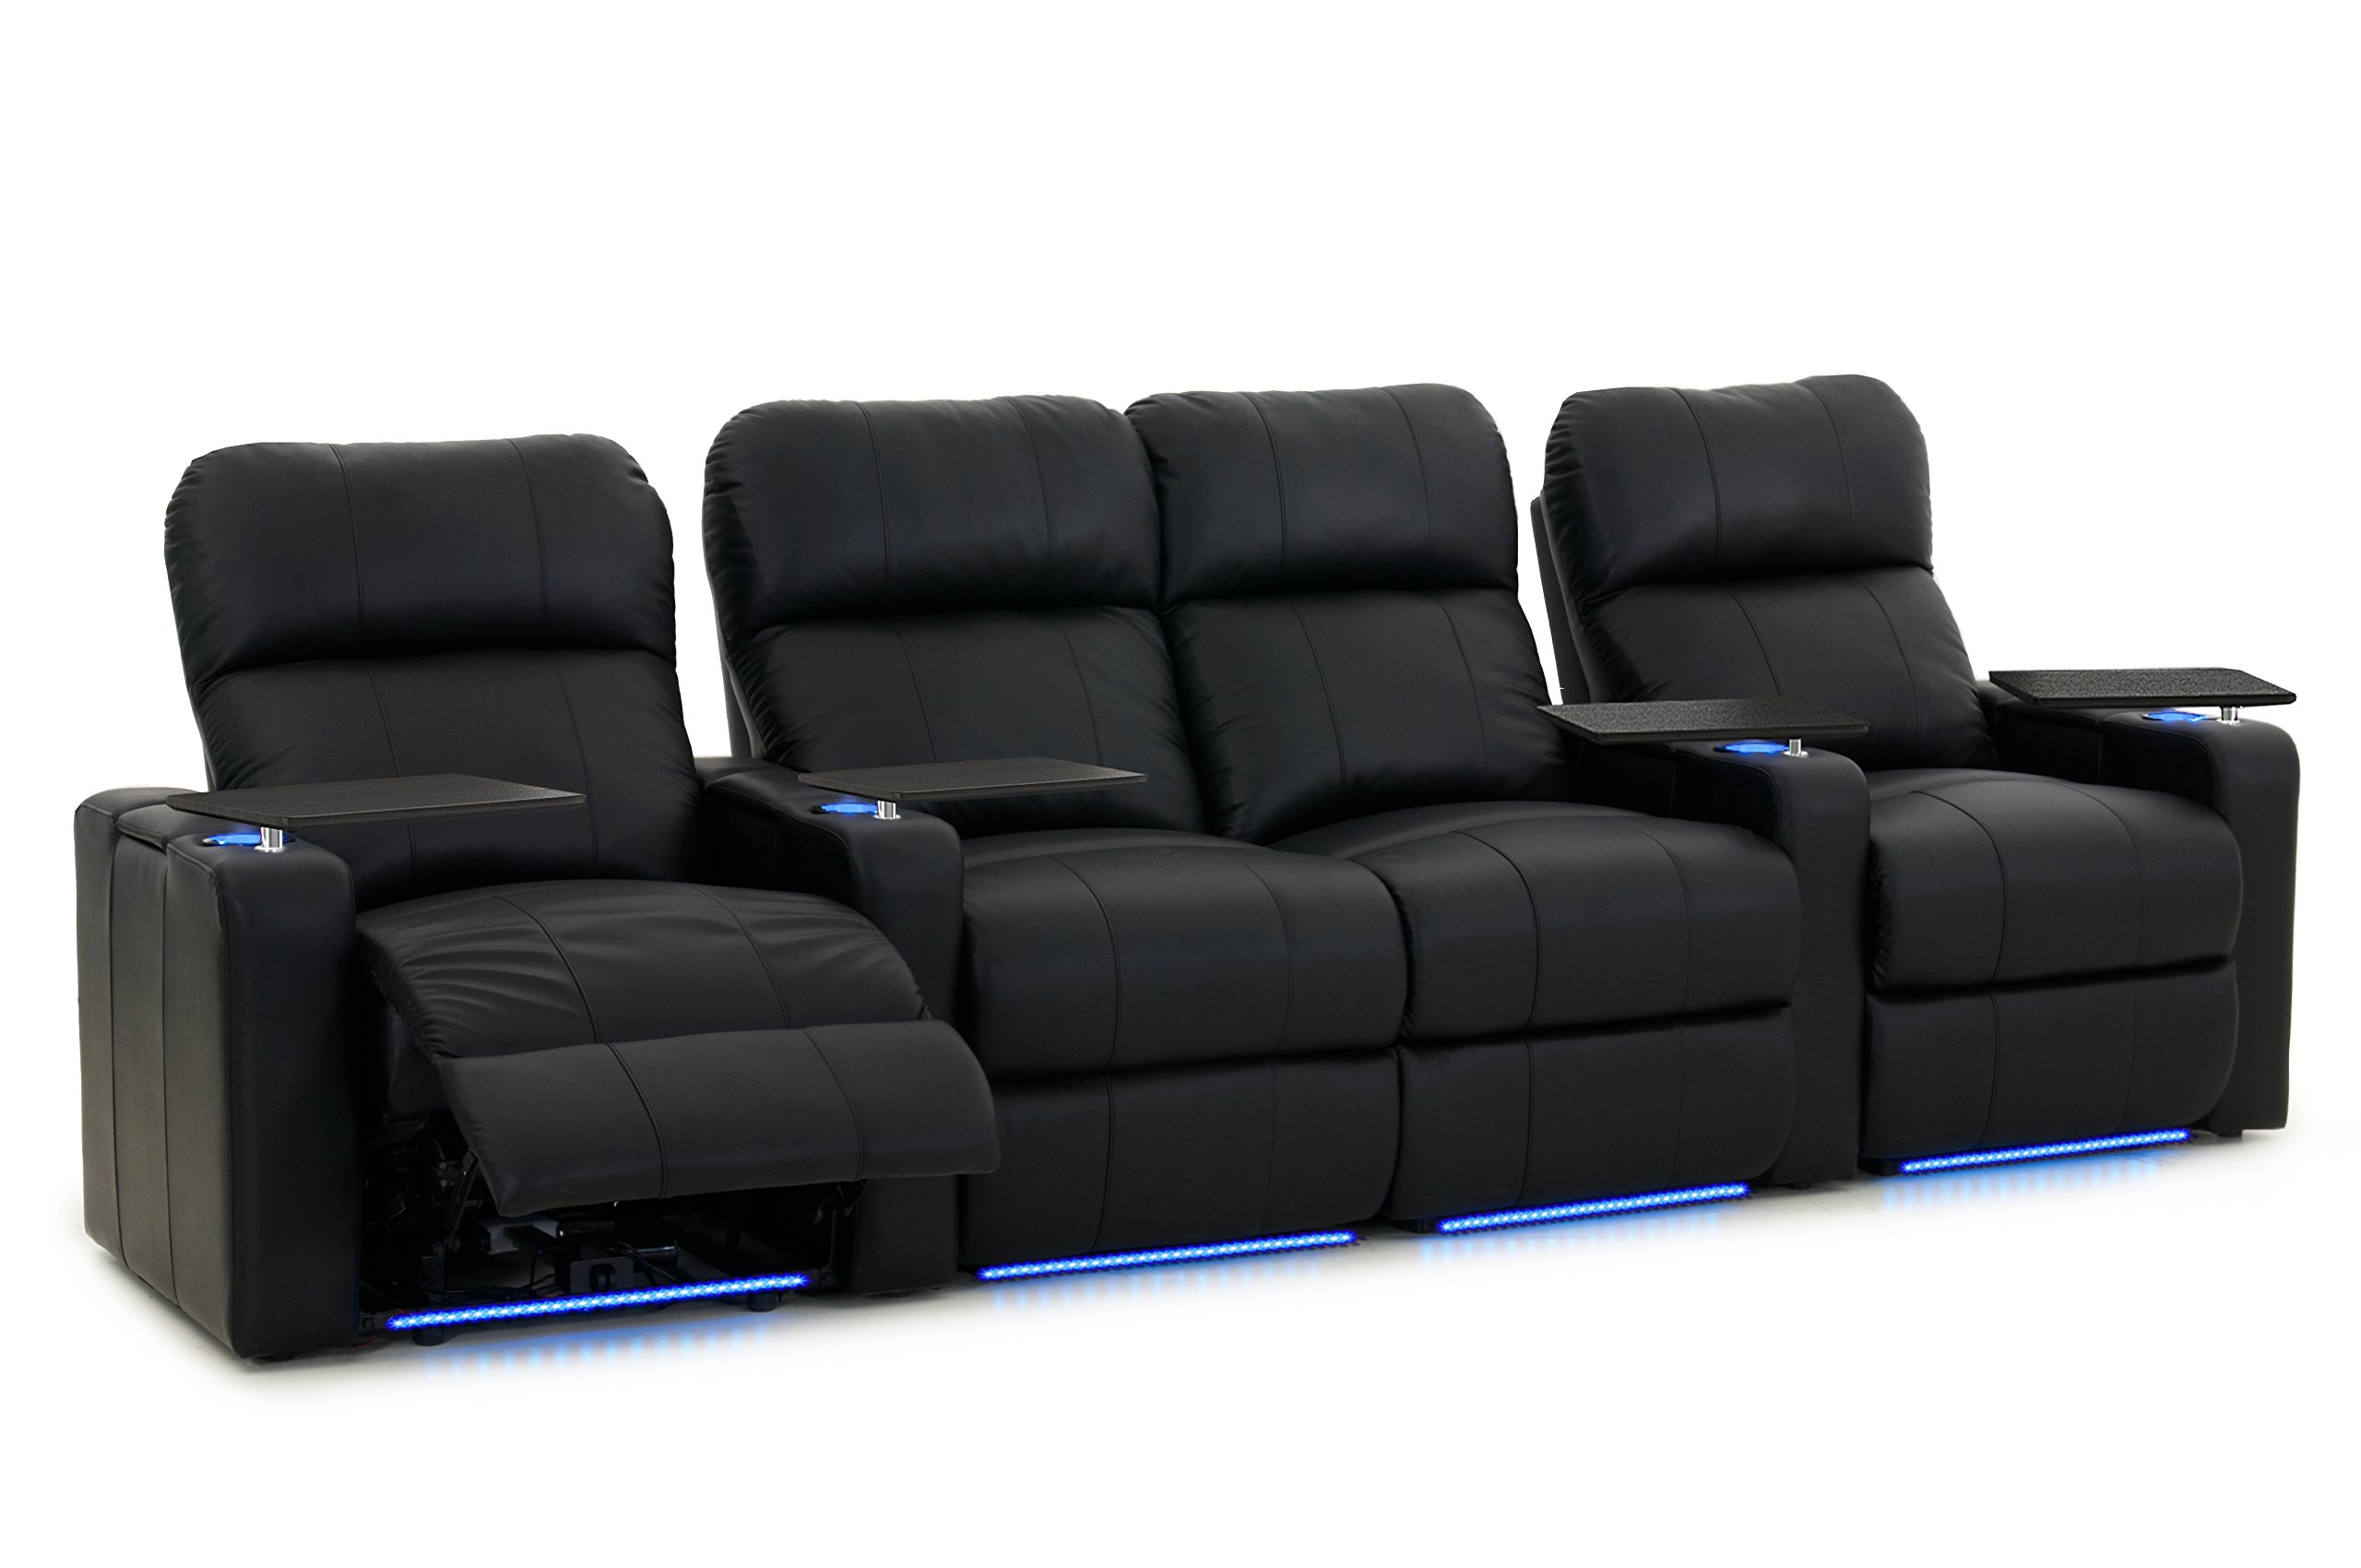 Turbo XL700 Home Theater Seats - Octane Seating - Black Bonded Leather - Power Recline - Straight Row of 4 Theater Seats with Middle Loveseat - Lights - Storage Arms